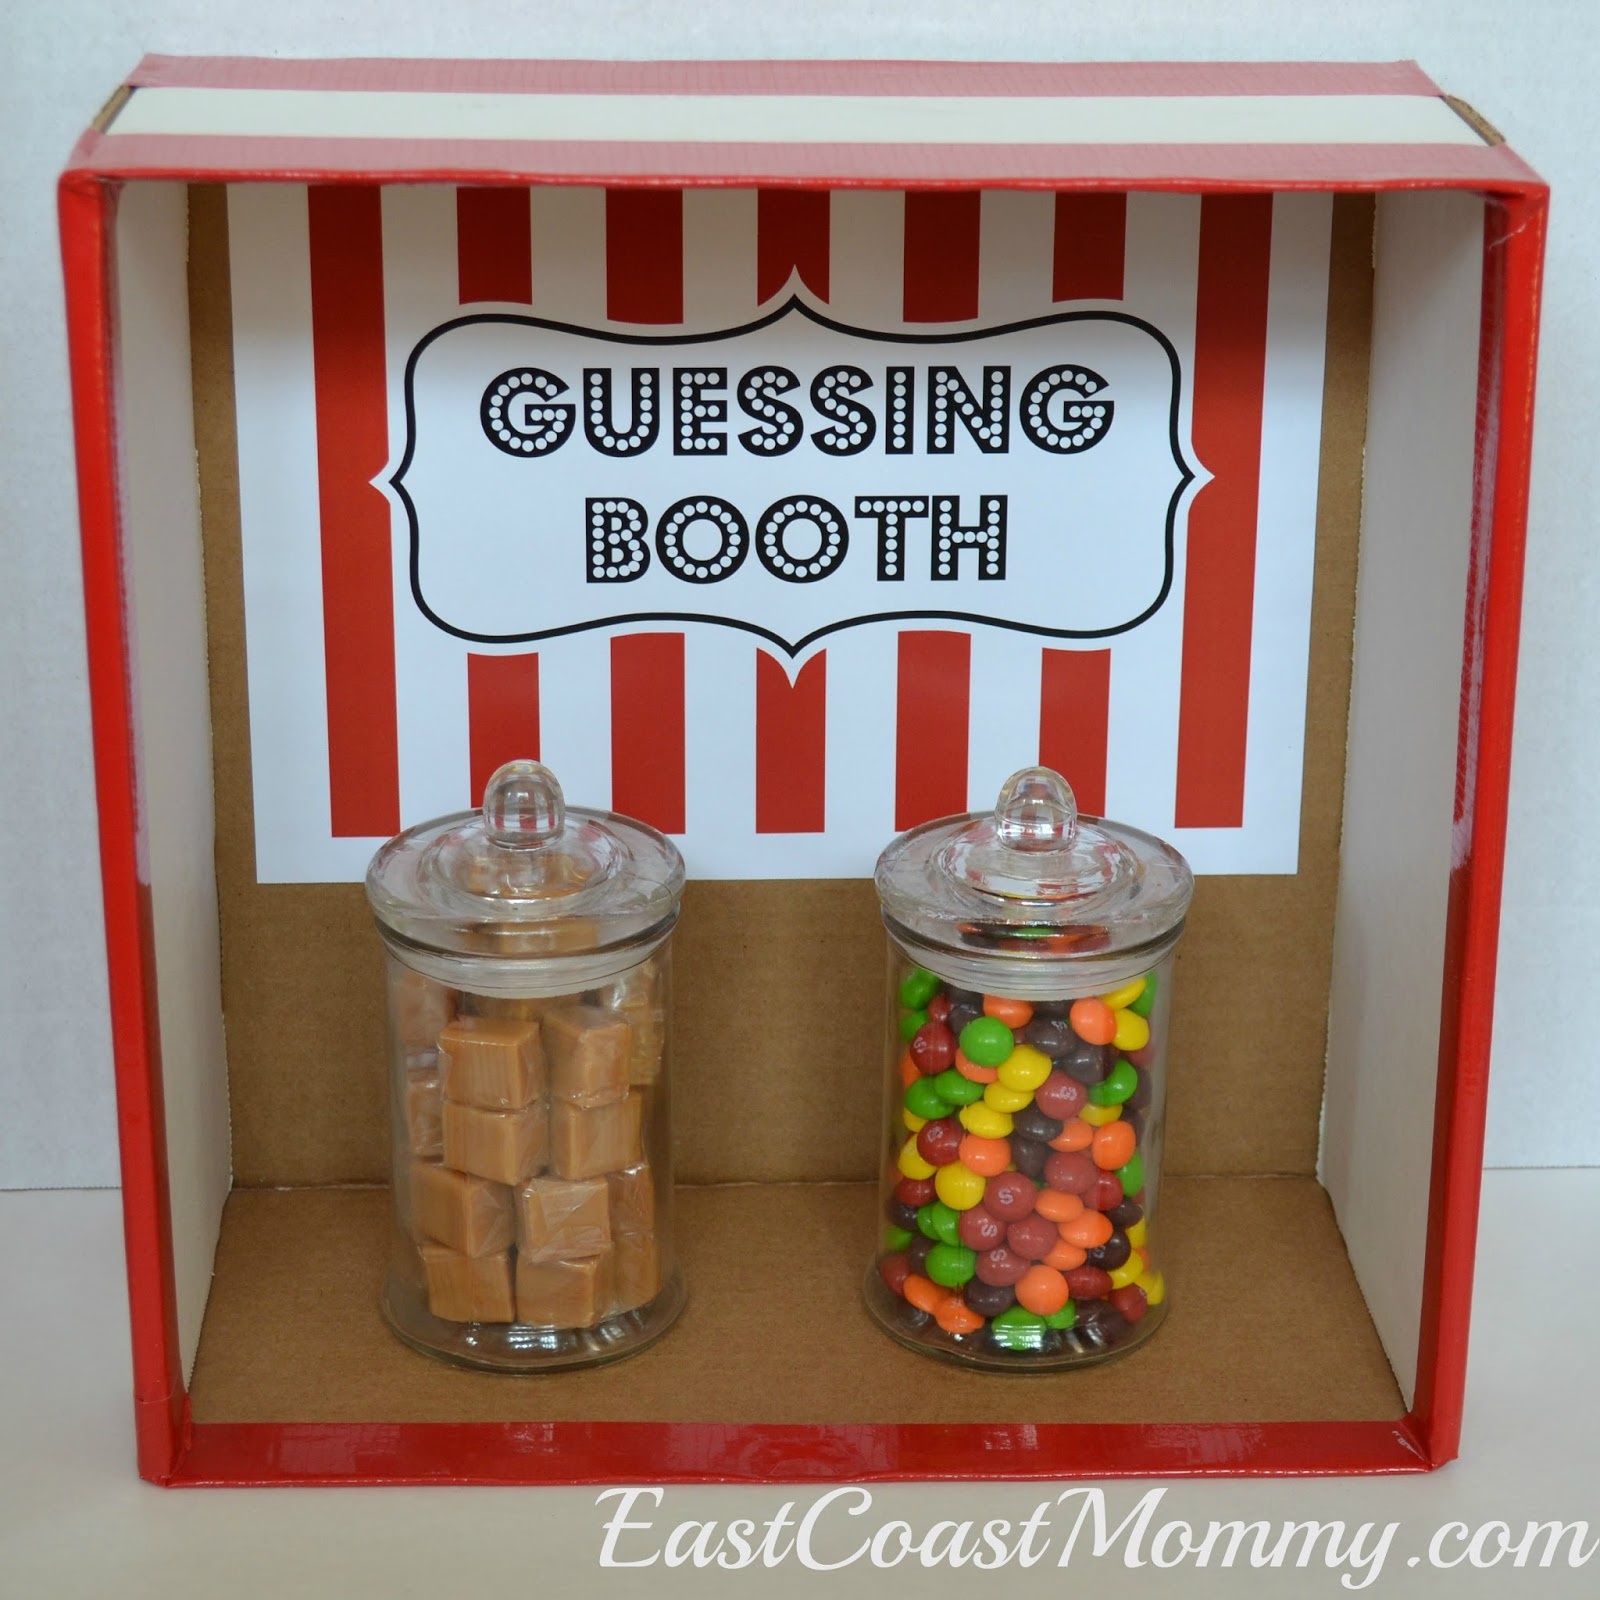 east coast mommy carnival games and activities